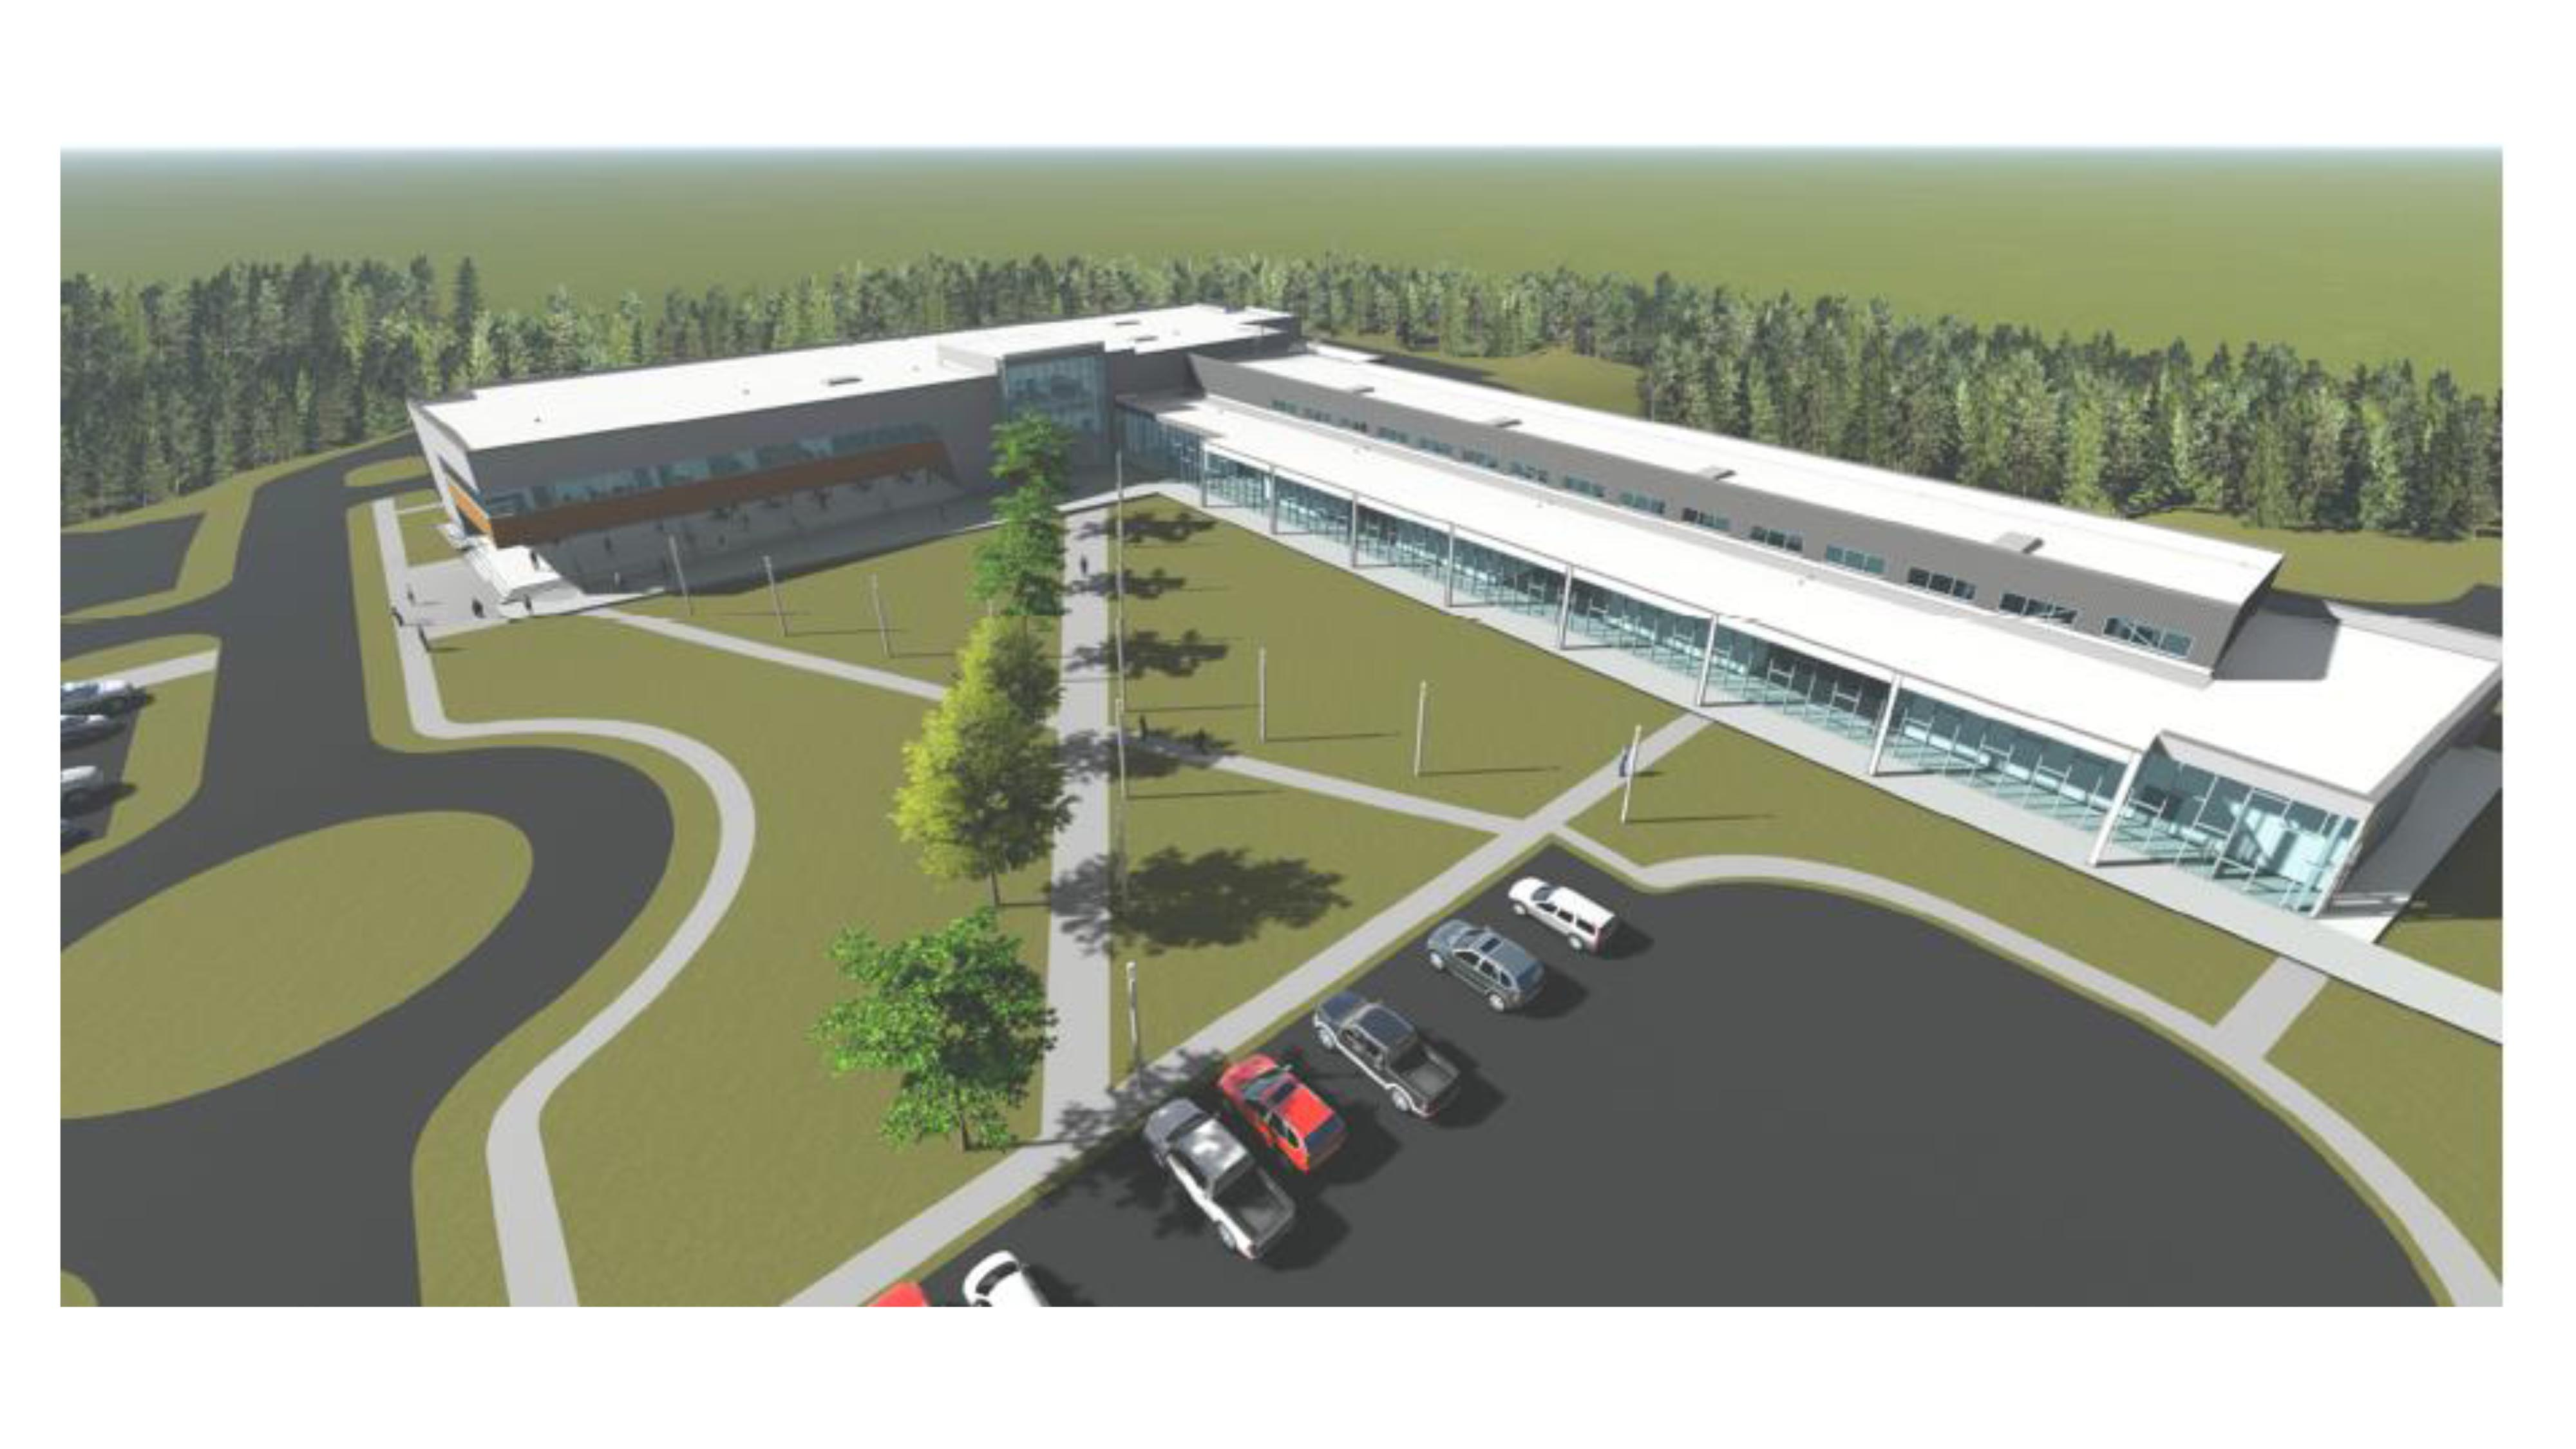 One of several drawings of what developers have in store for the brand new campus building for Georgia Northwestern Technical College. The new addition to GNTC's Whitfield Murray Campus in Dalton, Georgia is tentatively scheduled to be completed by late 2018.